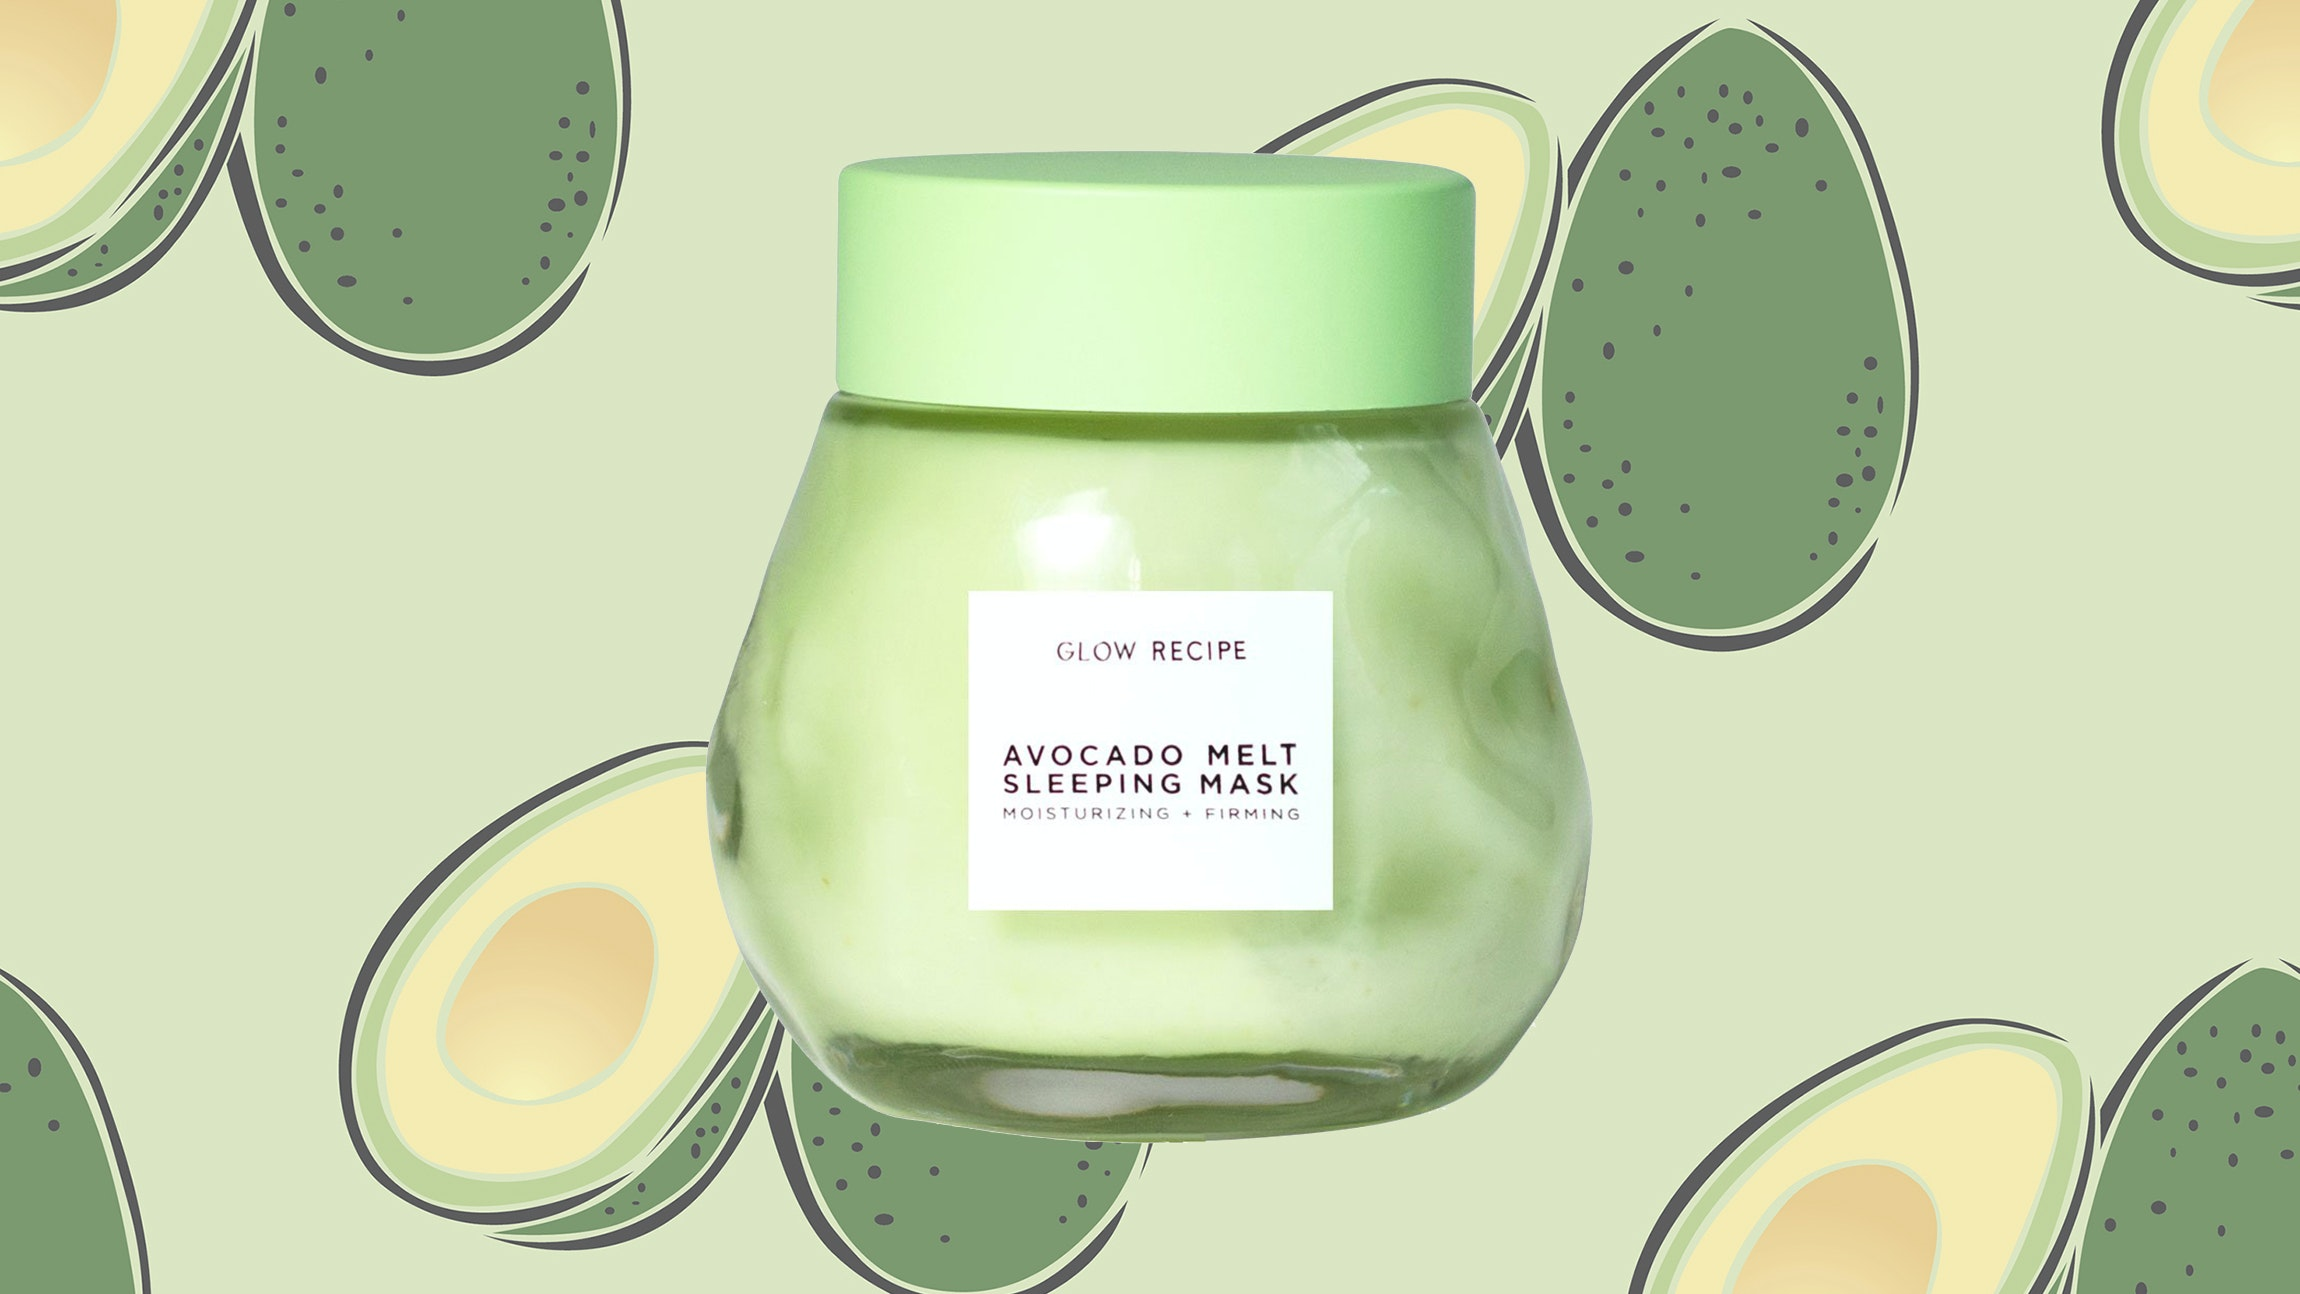 The New Glow Recipe Sleeping Mask Is a Must-Try for Avocado Fans